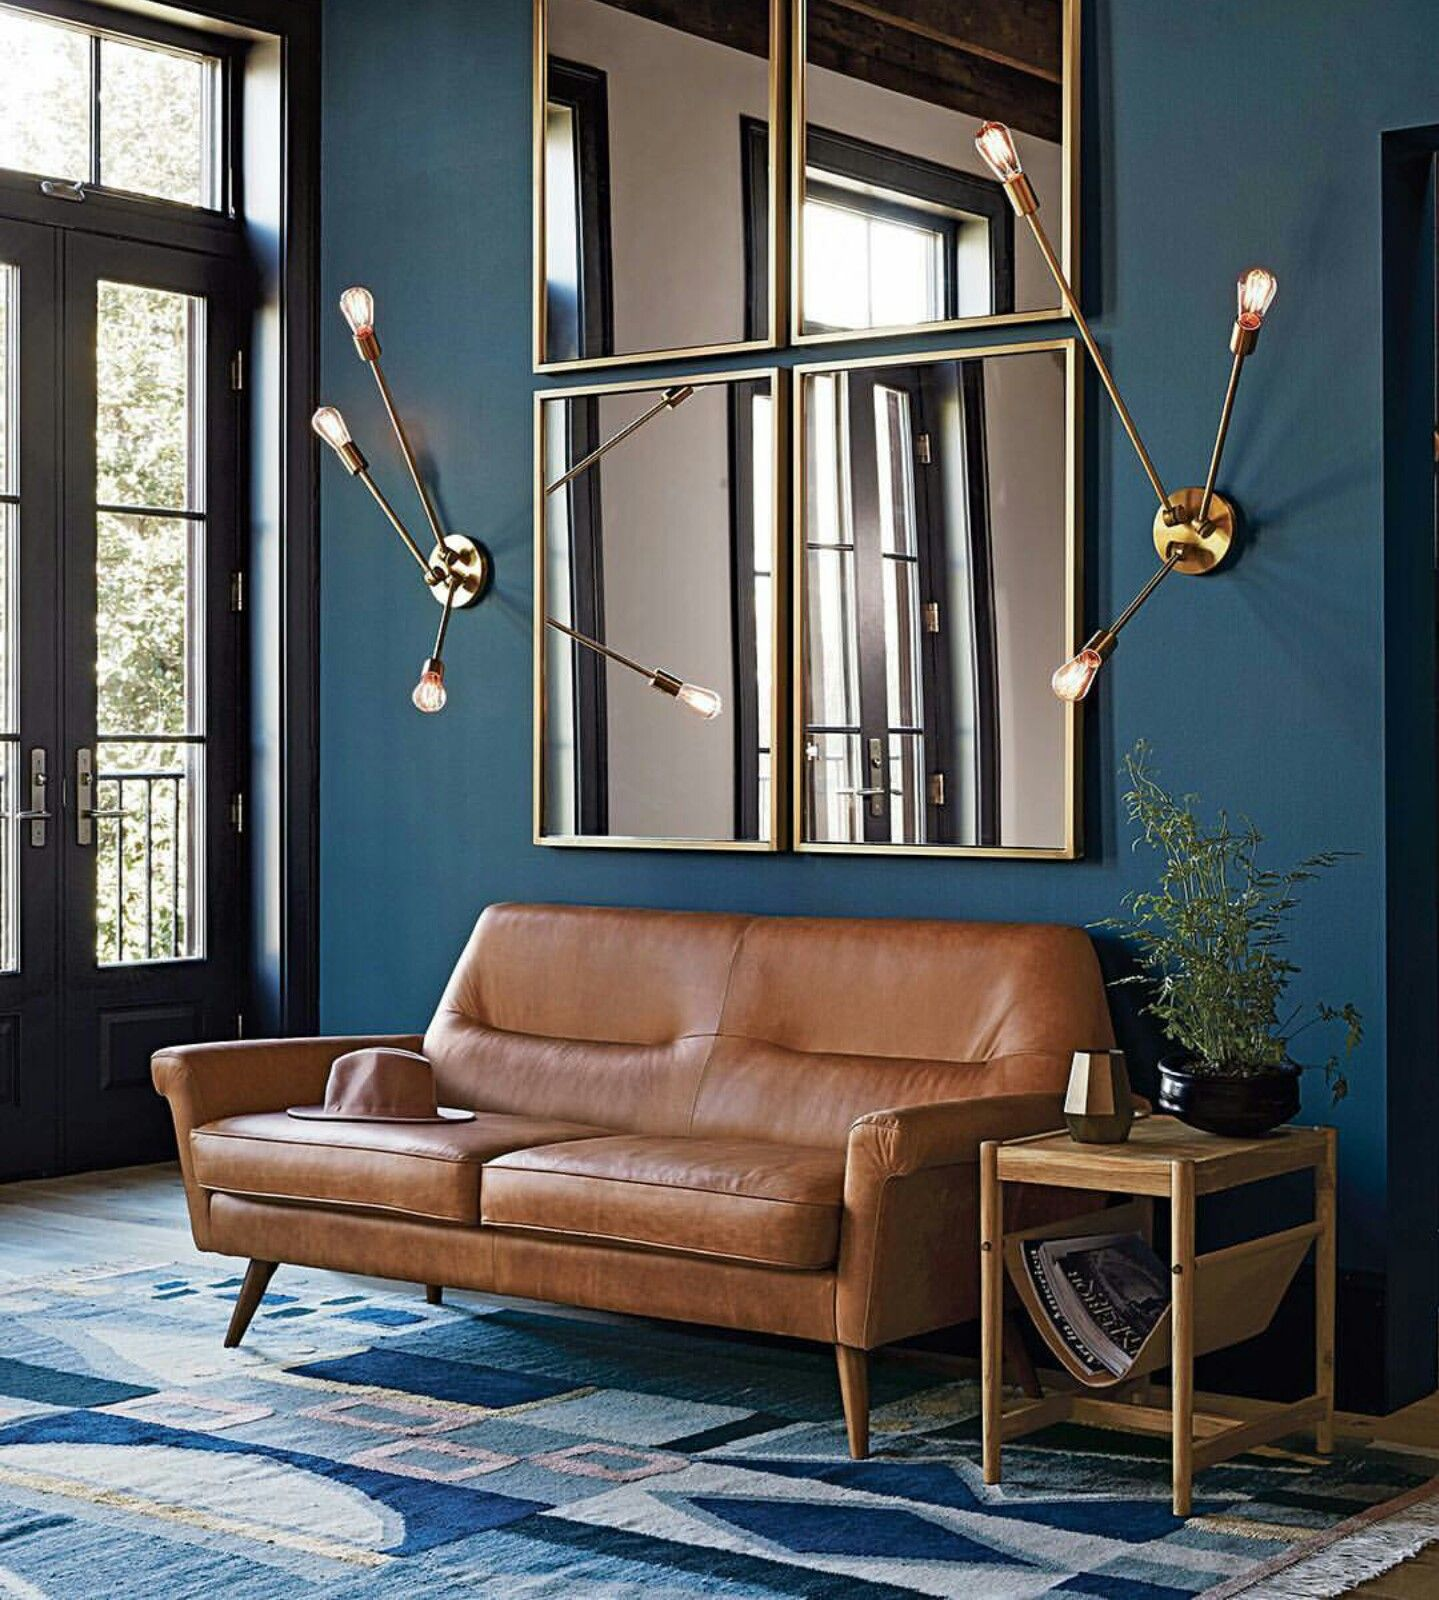 Imagine the Bryant Leather sofa against this Deep blue wall